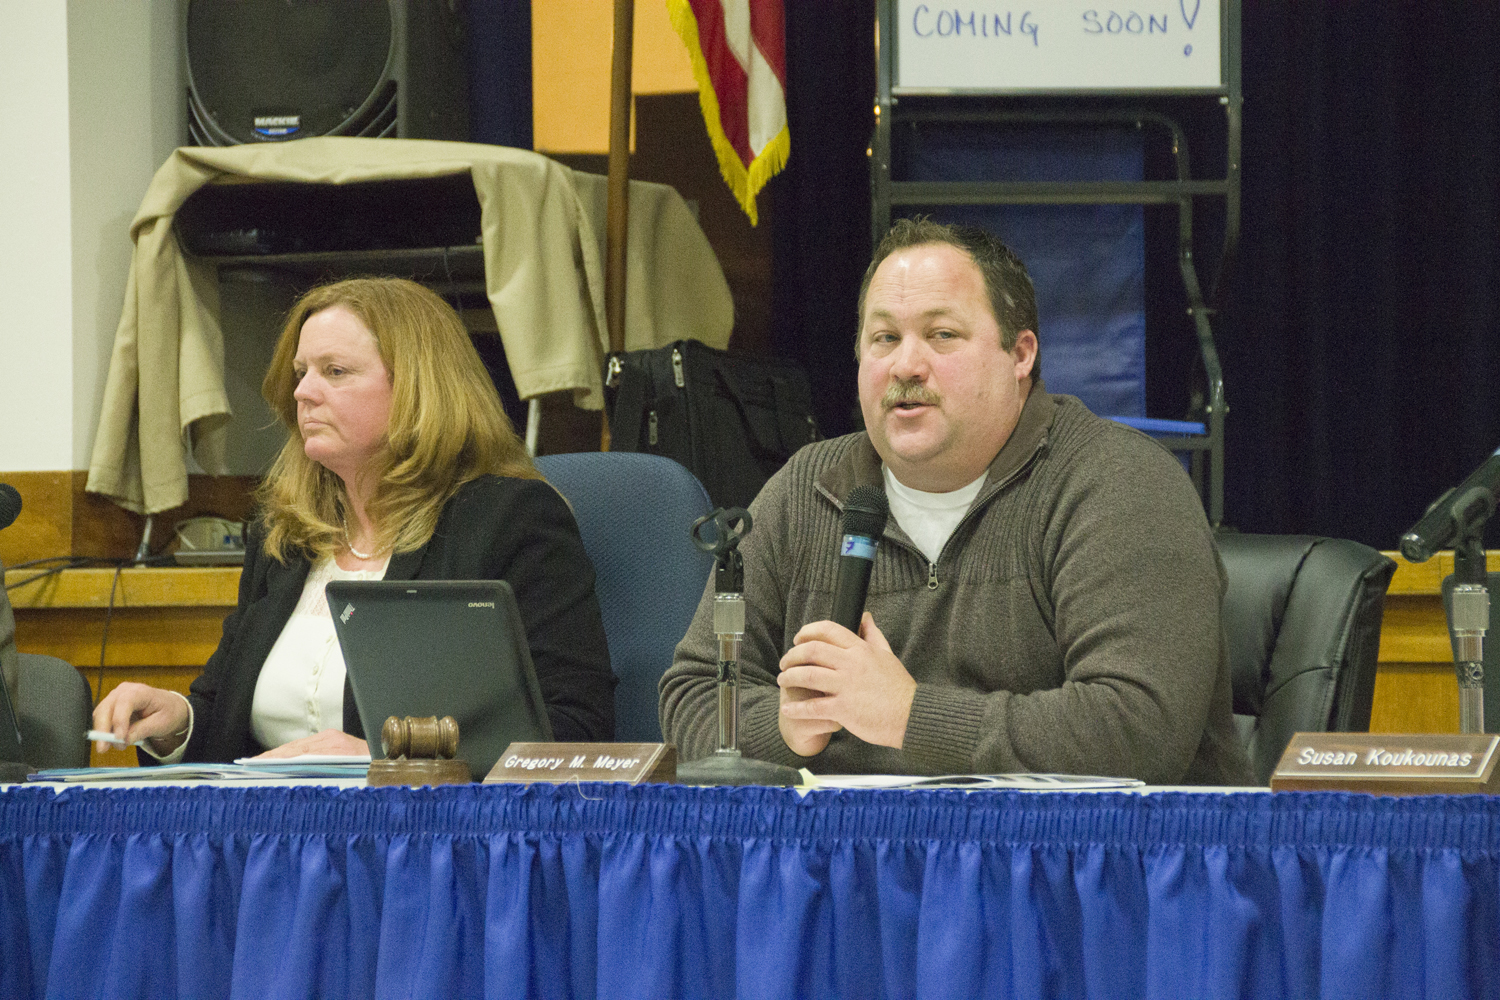 School board president Greg Meyer said Tuesday night that the district will have to review its selective classification policy before moving forward. (Credit: Paul Squire)